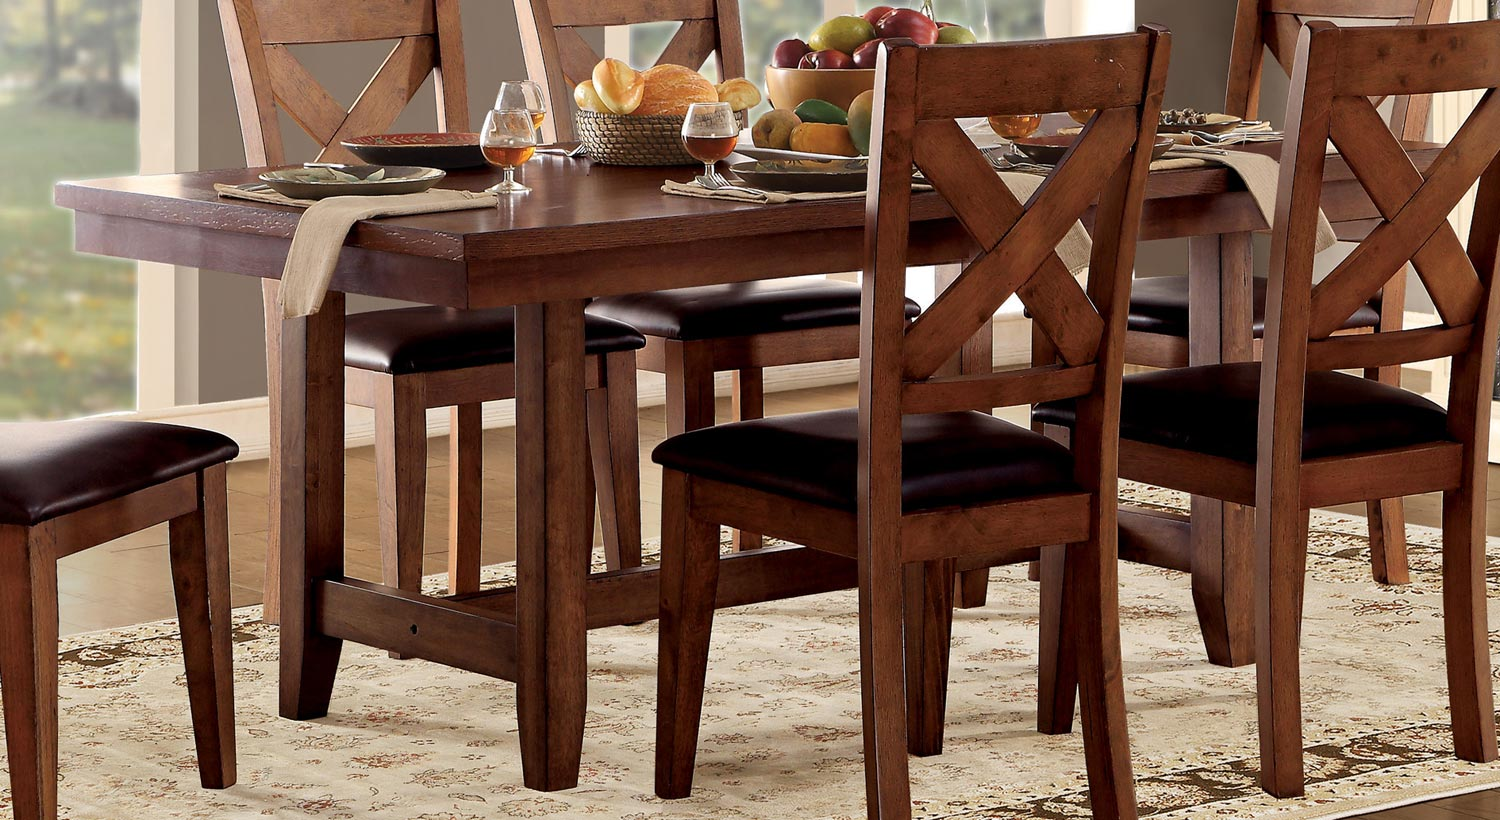 Homelegance Burrillville Trestle Dining Table Oak - 72 trestle dining table